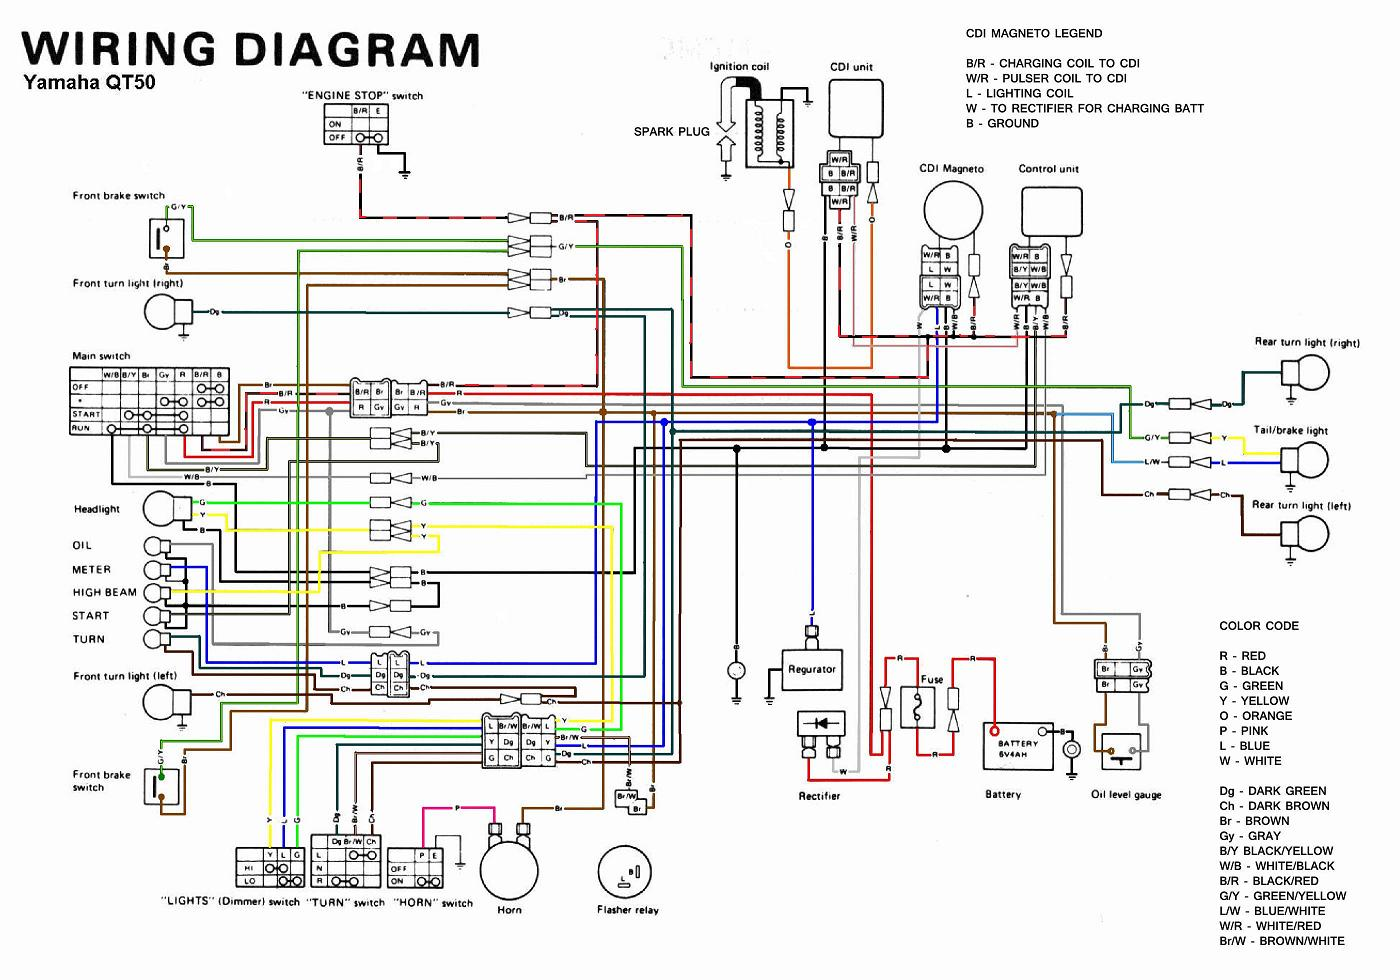 Yamaha Snowmobile Parts Diagram Free Download Wiring Diagrams ... on polaris wiring diagrams, yamaha mountain max parts, harley davidson wiring diagrams, fiat electrical wiring diagrams, kawasaki jet ski wiring diagrams, honda wiring diagrams, suzuki wiring diagrams, yamaha enticer 250 carburetor diagram, mercury wiring diagrams, international truck wiring diagrams, atv wiring diagrams, ktm wiring diagrams, motorcycle wiring diagrams, yamaha scooter wiring diagrams, bmw wiring diagrams, johnson controls wiring diagrams, polaris snowmobile parts diagrams, yamaha generators wiring diagrams, polaris snowmobile engine diagrams, arctic cat wiring diagrams,